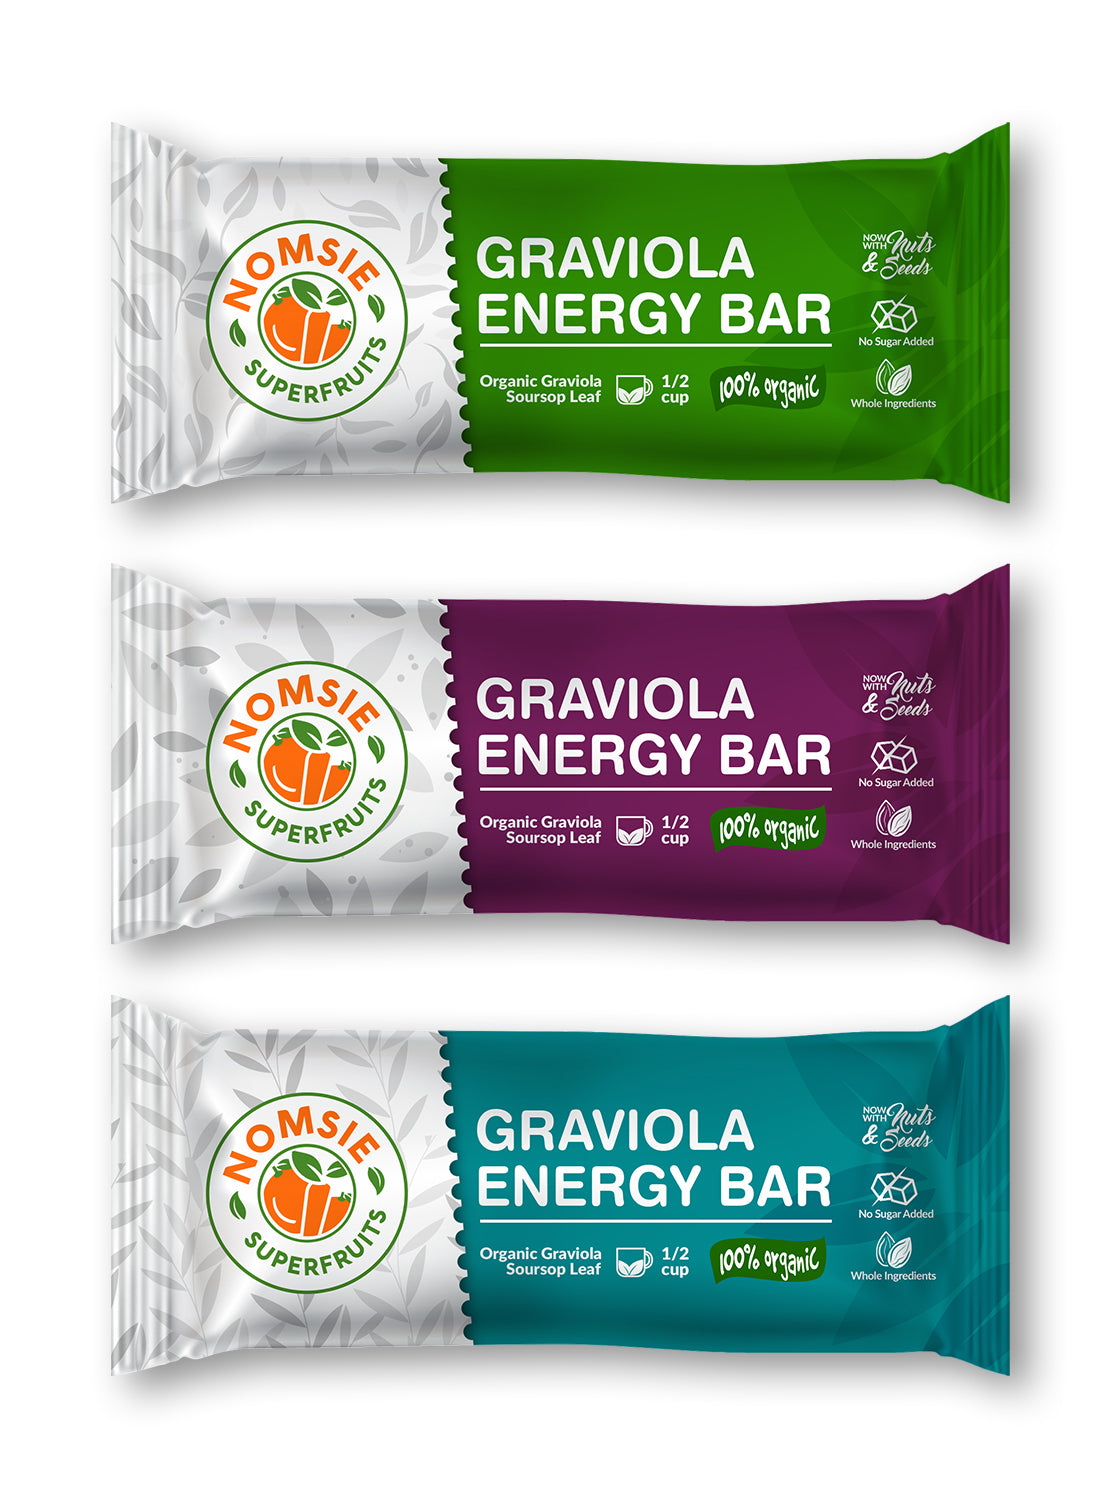 Graviola Energy Bars - Nomsie Superfruits - Case of 12 Bars - Variety Pack